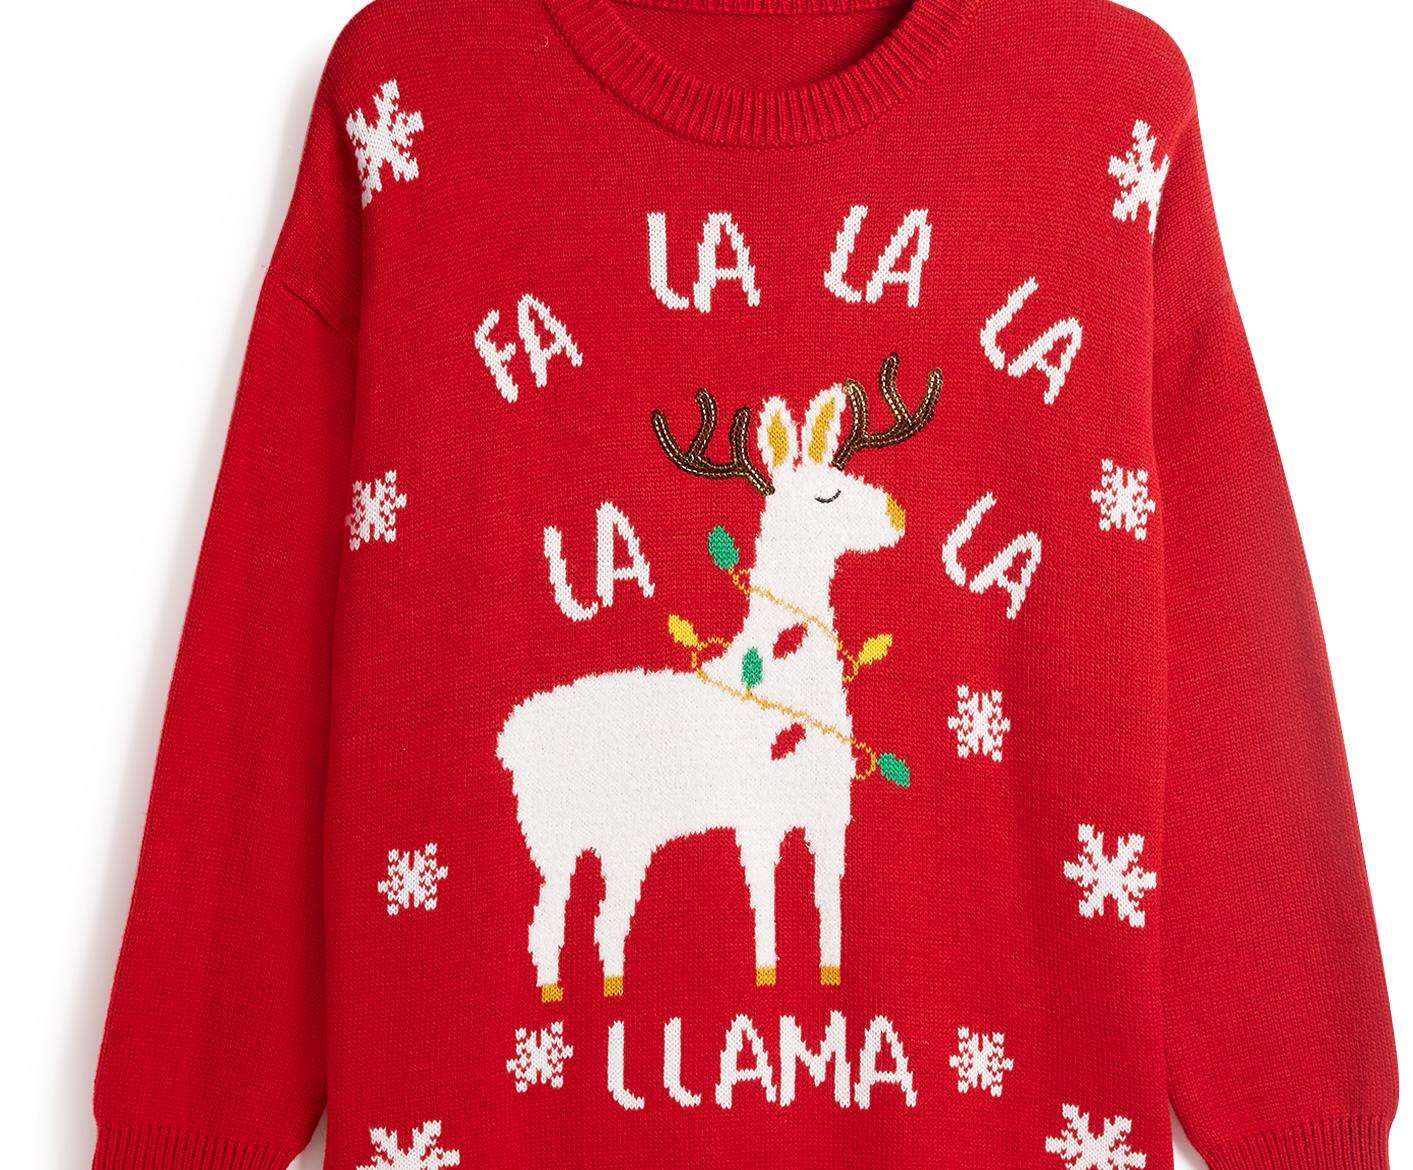 The llamas are everywhere this Christmas, including on this women's jumper from Primark. £12.